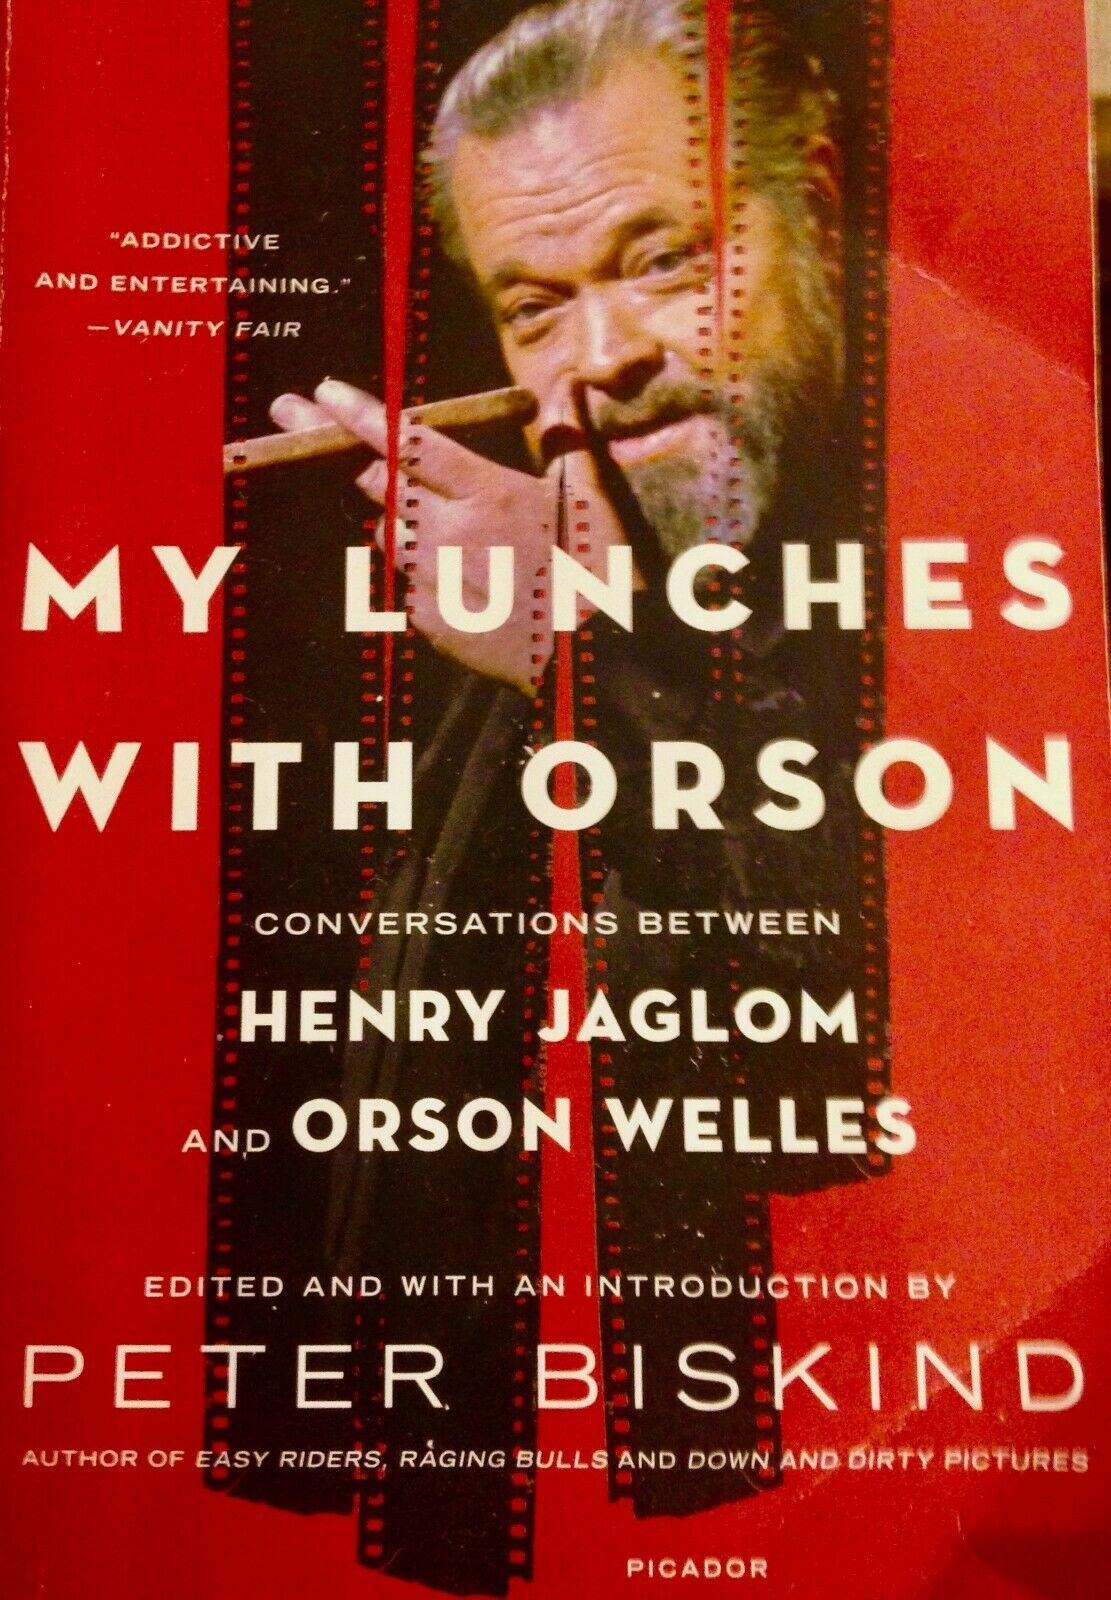 Primary image for My Lunches with Orson: Conversations between Henry Jaglom and Orson Welles VG